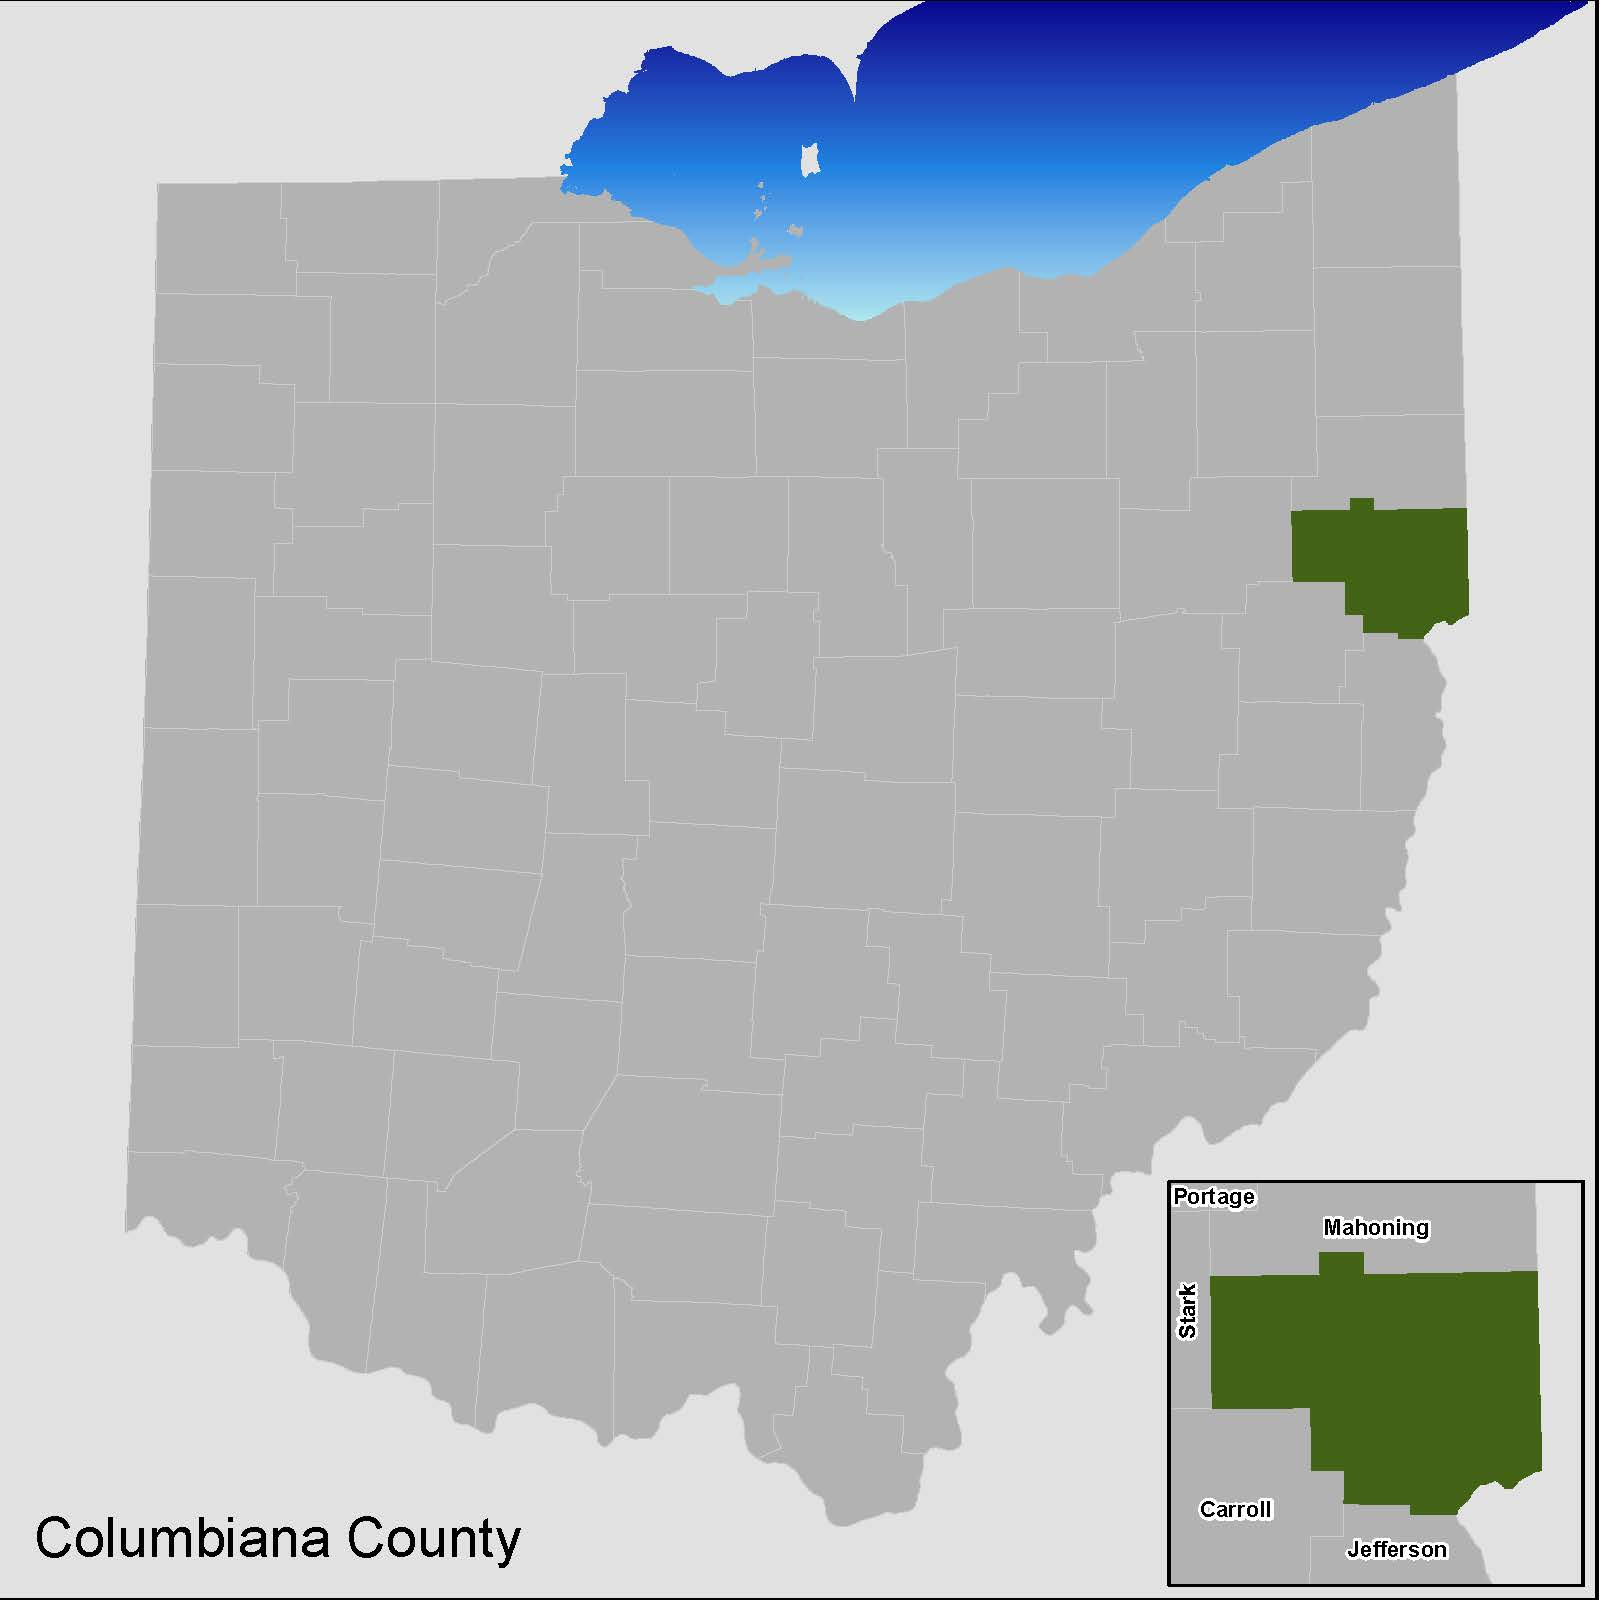 columbiana dating site On plentyoffishcom you message thousands of other local singles online dating via plentyoffish doesn't cost you a dime paid dating sites can end up costing you hundreds of dollars a year without a single date if you are looking for free online dating in columbiana than sign up right now over.